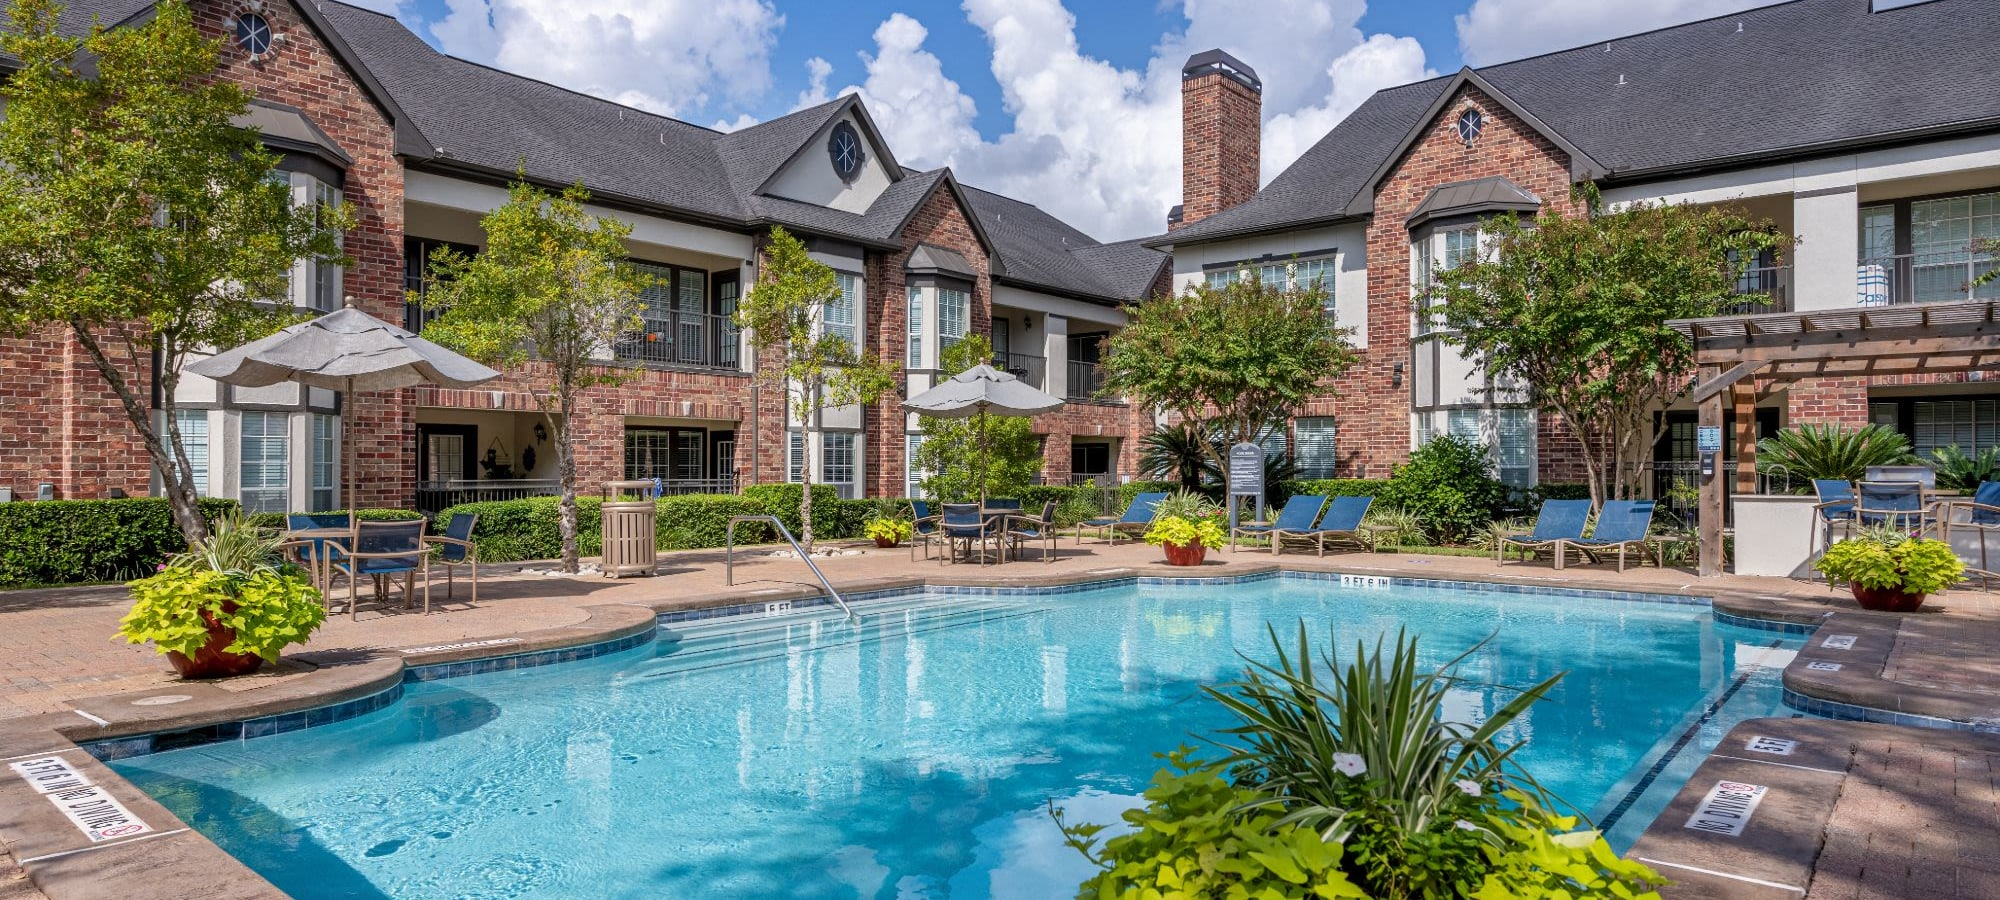 Amenities at Marquis on Memorial in Houston, Texas